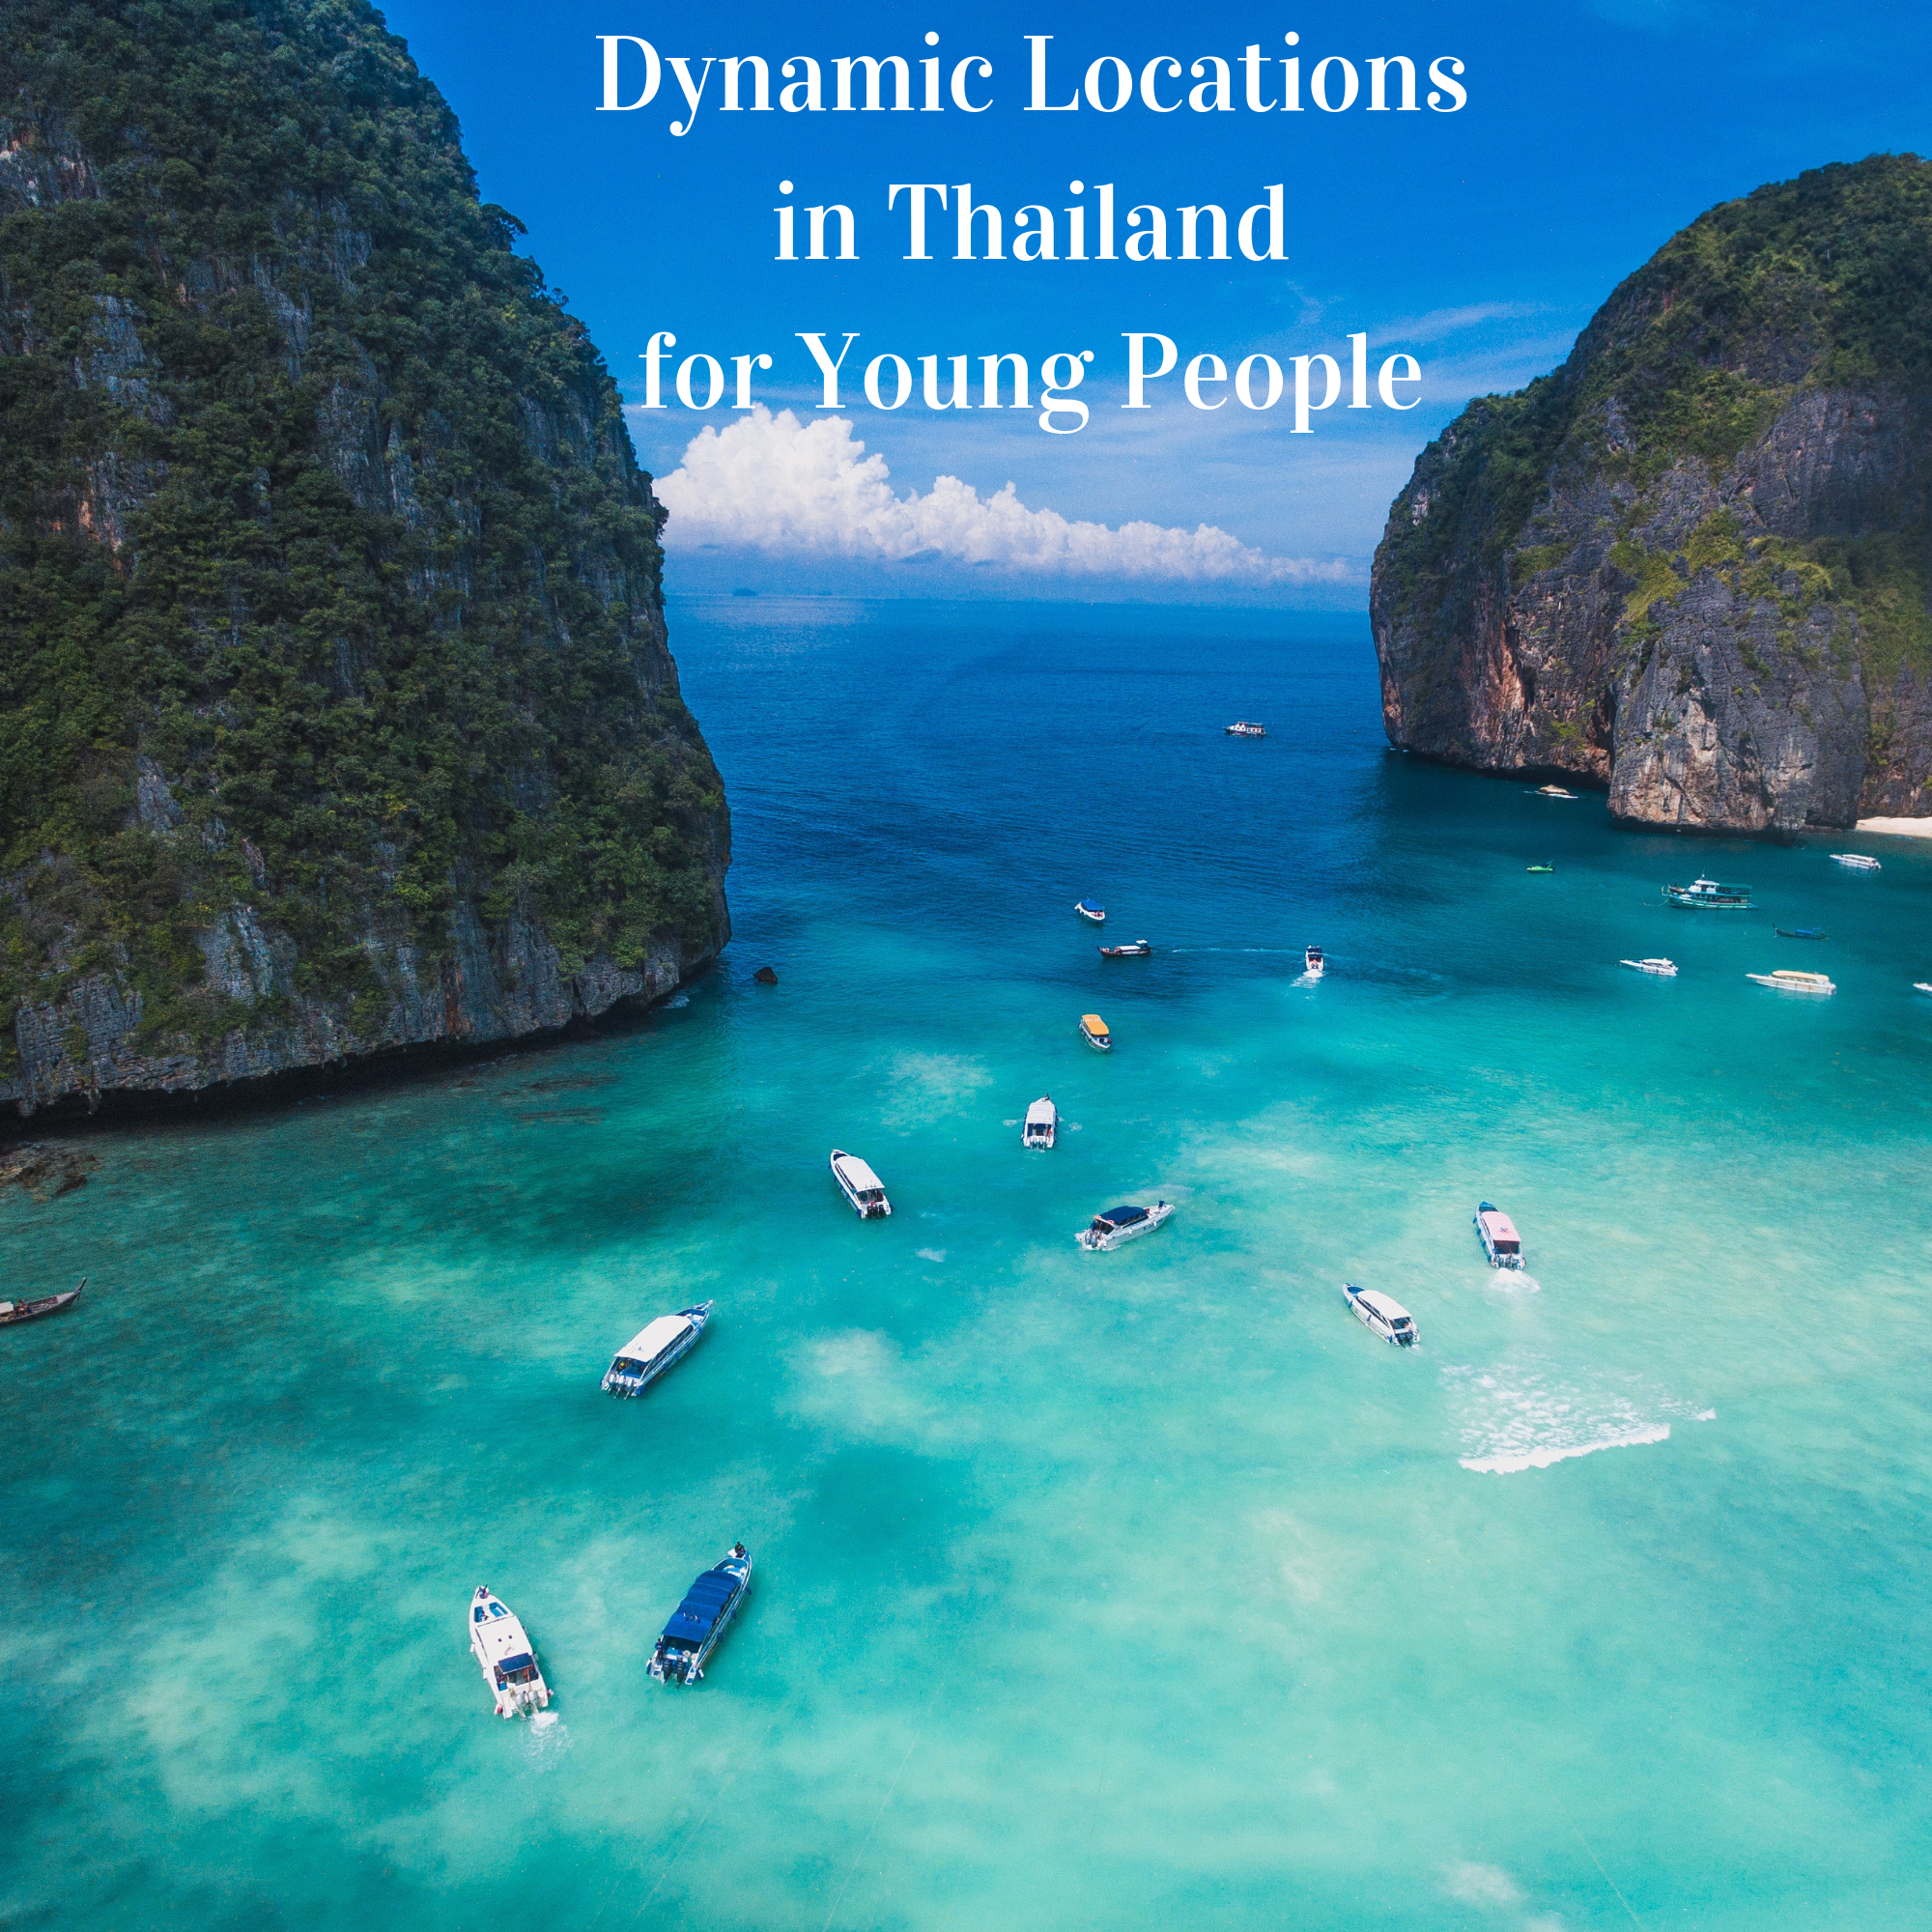 Dynamic Locations in Thailand for Young People